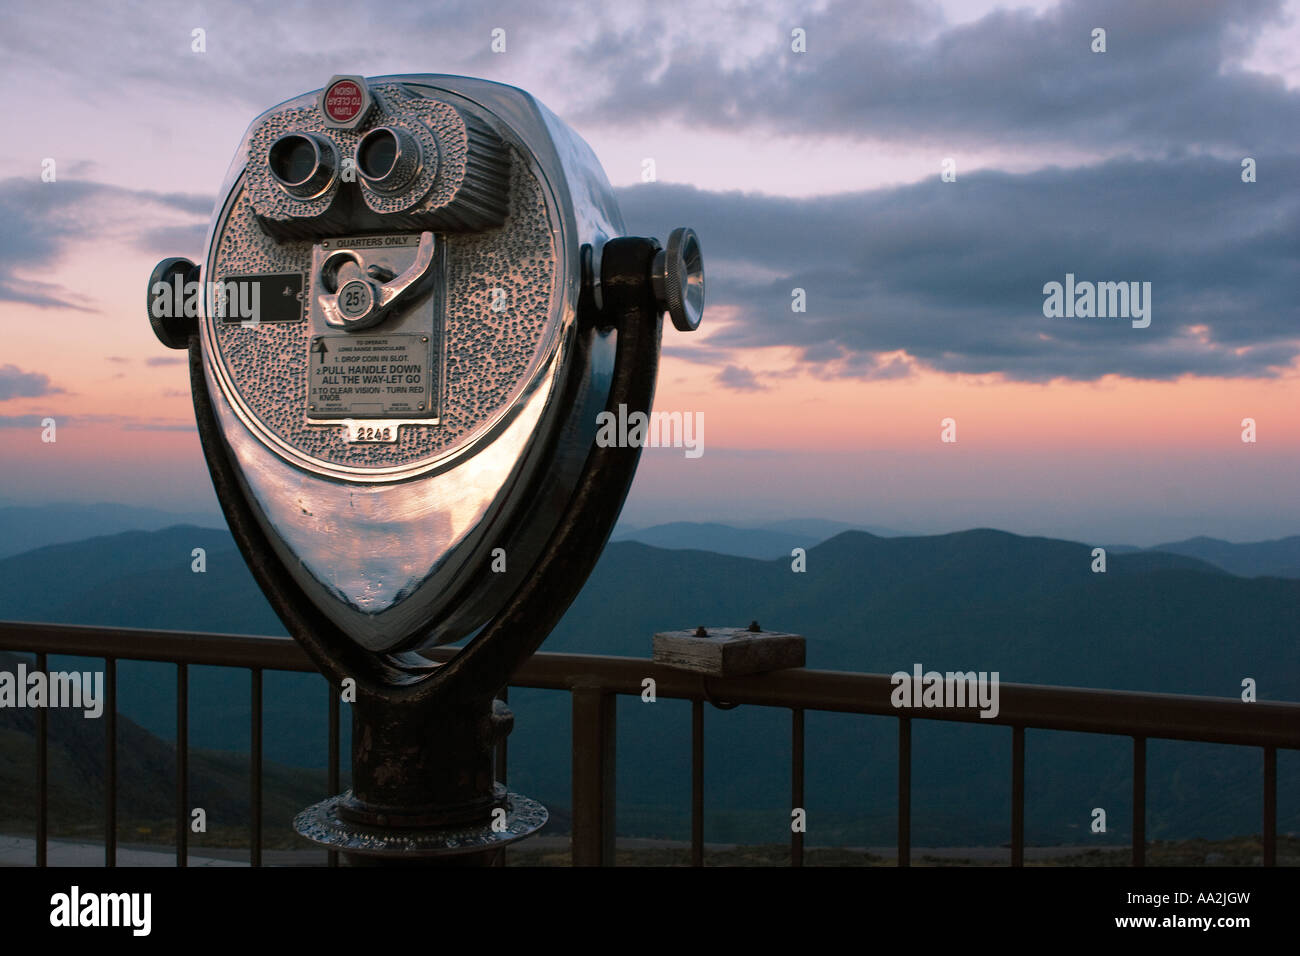 Champ d'observation au sommet du mont Washington, New Hampshire, United States Photo Stock